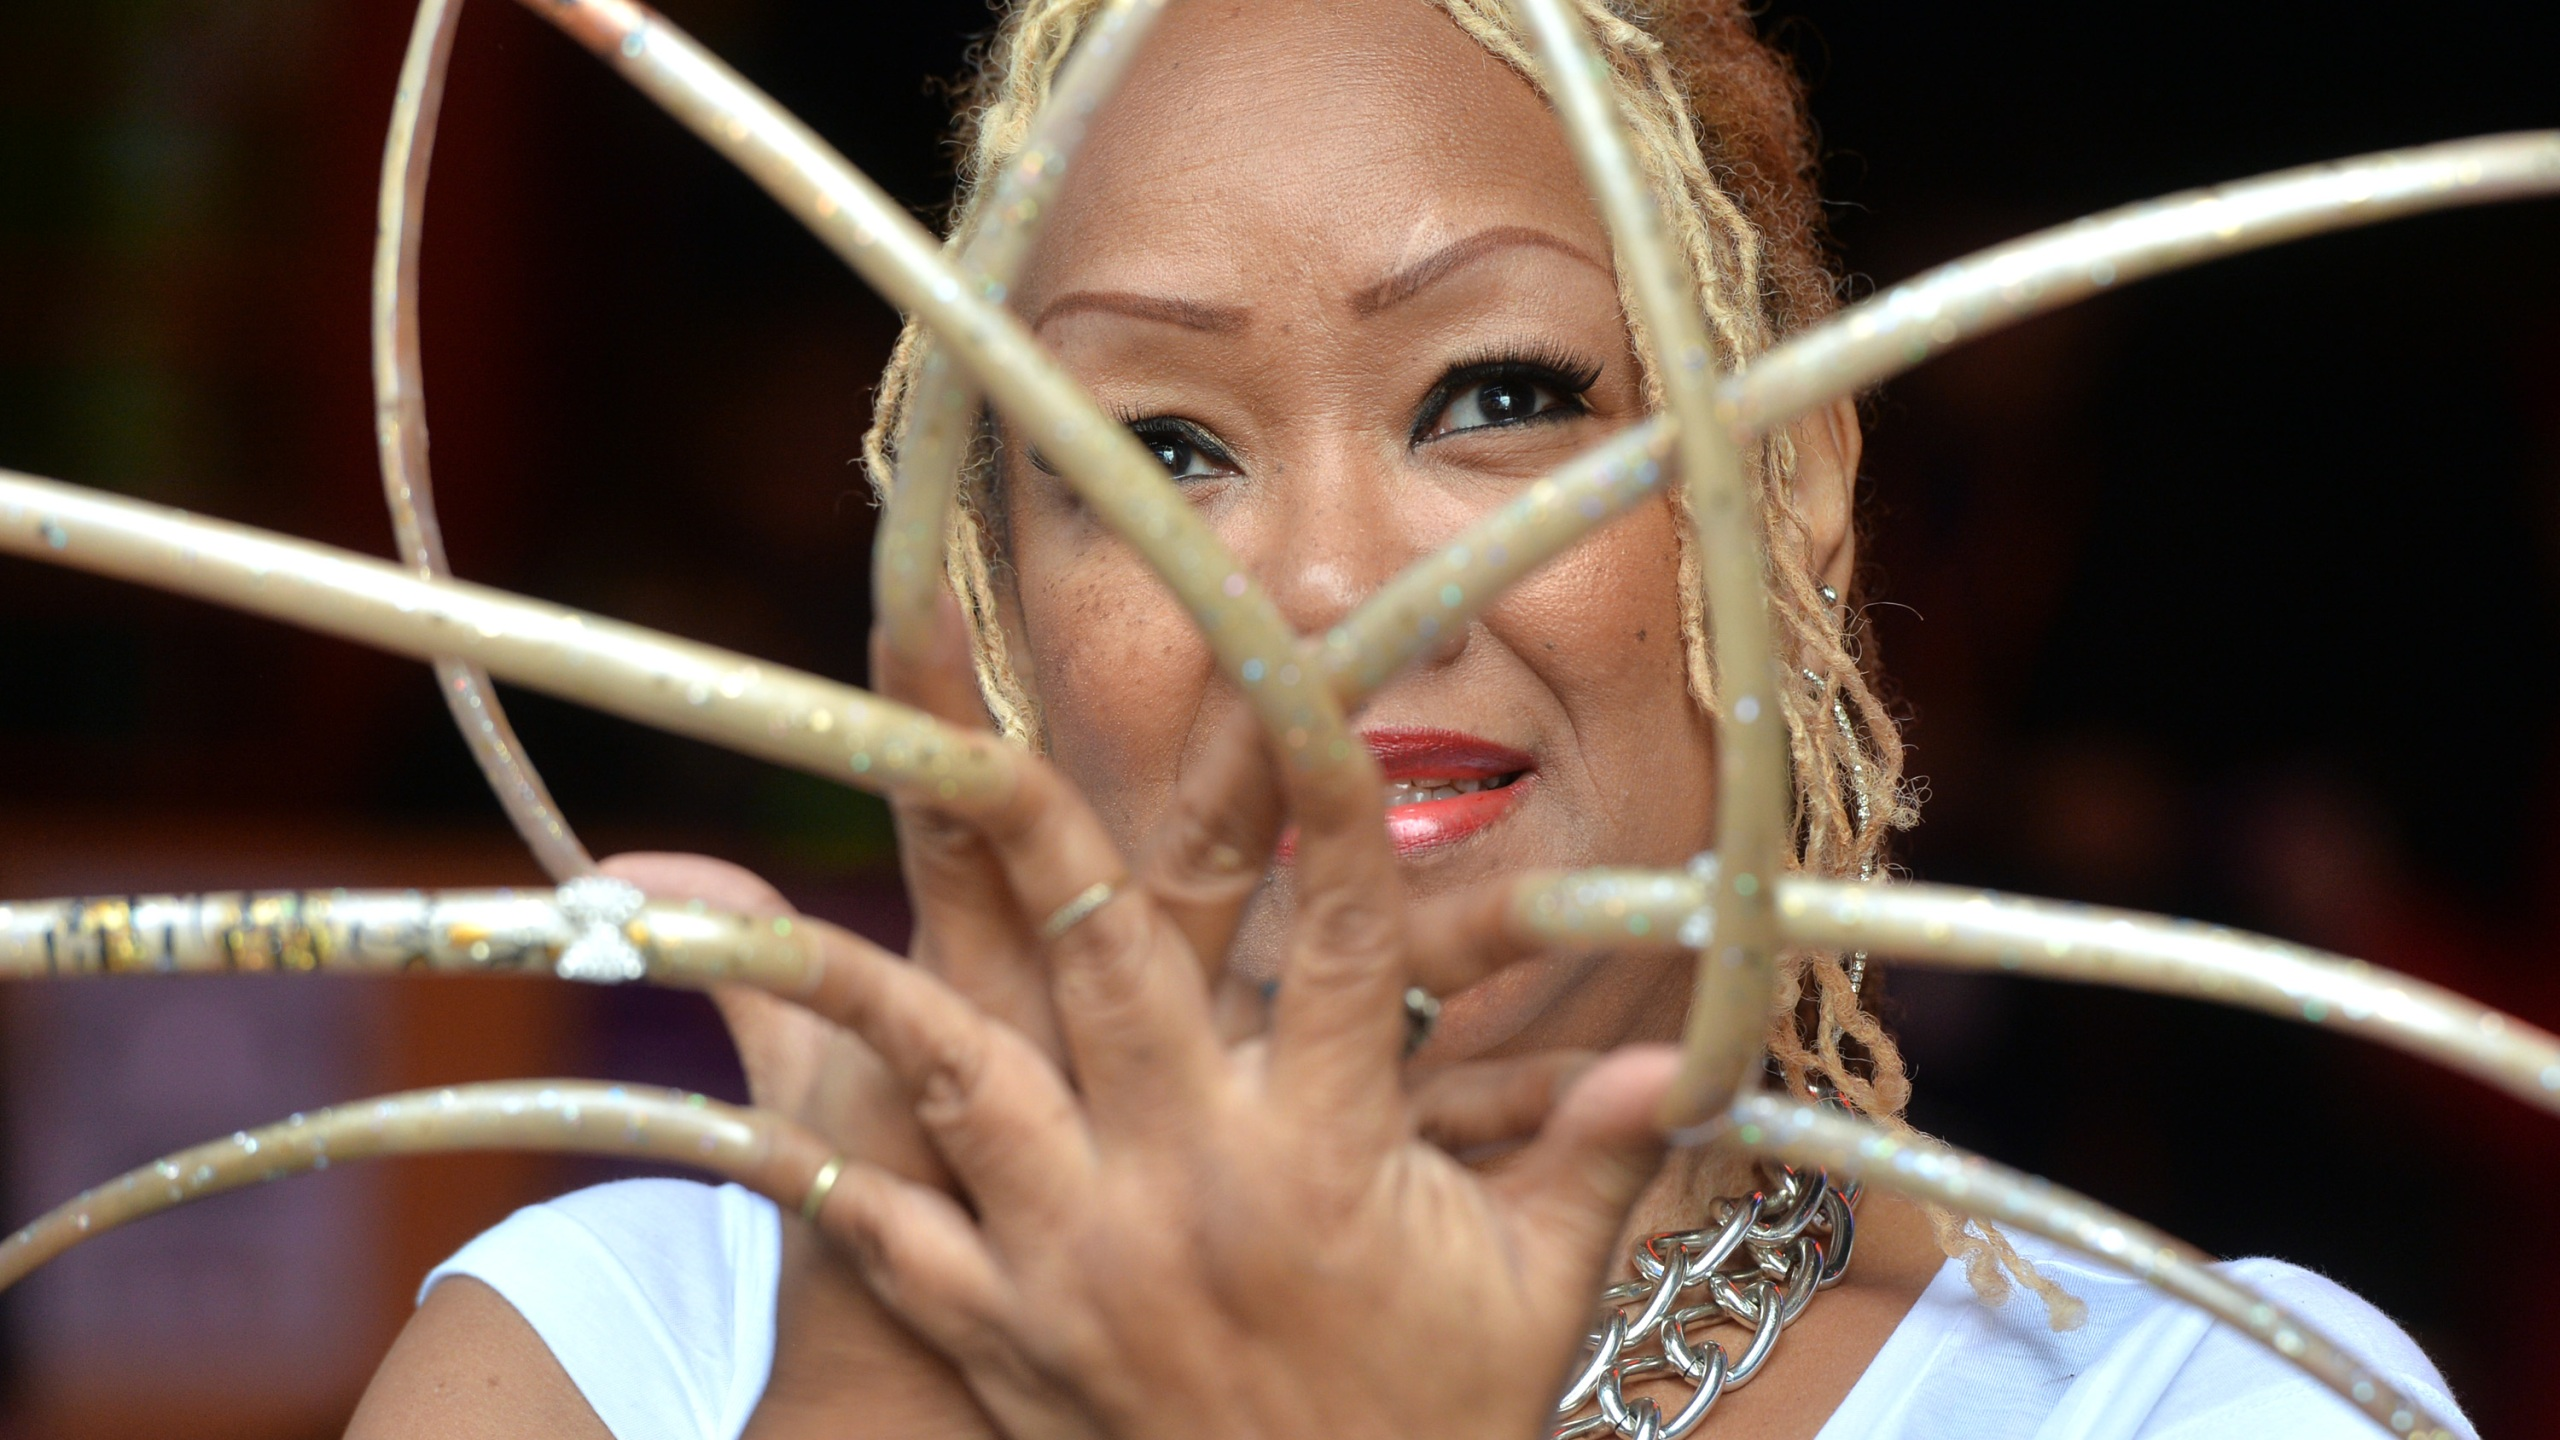 Texas woman with 'longest nails in the world' cuts them ...